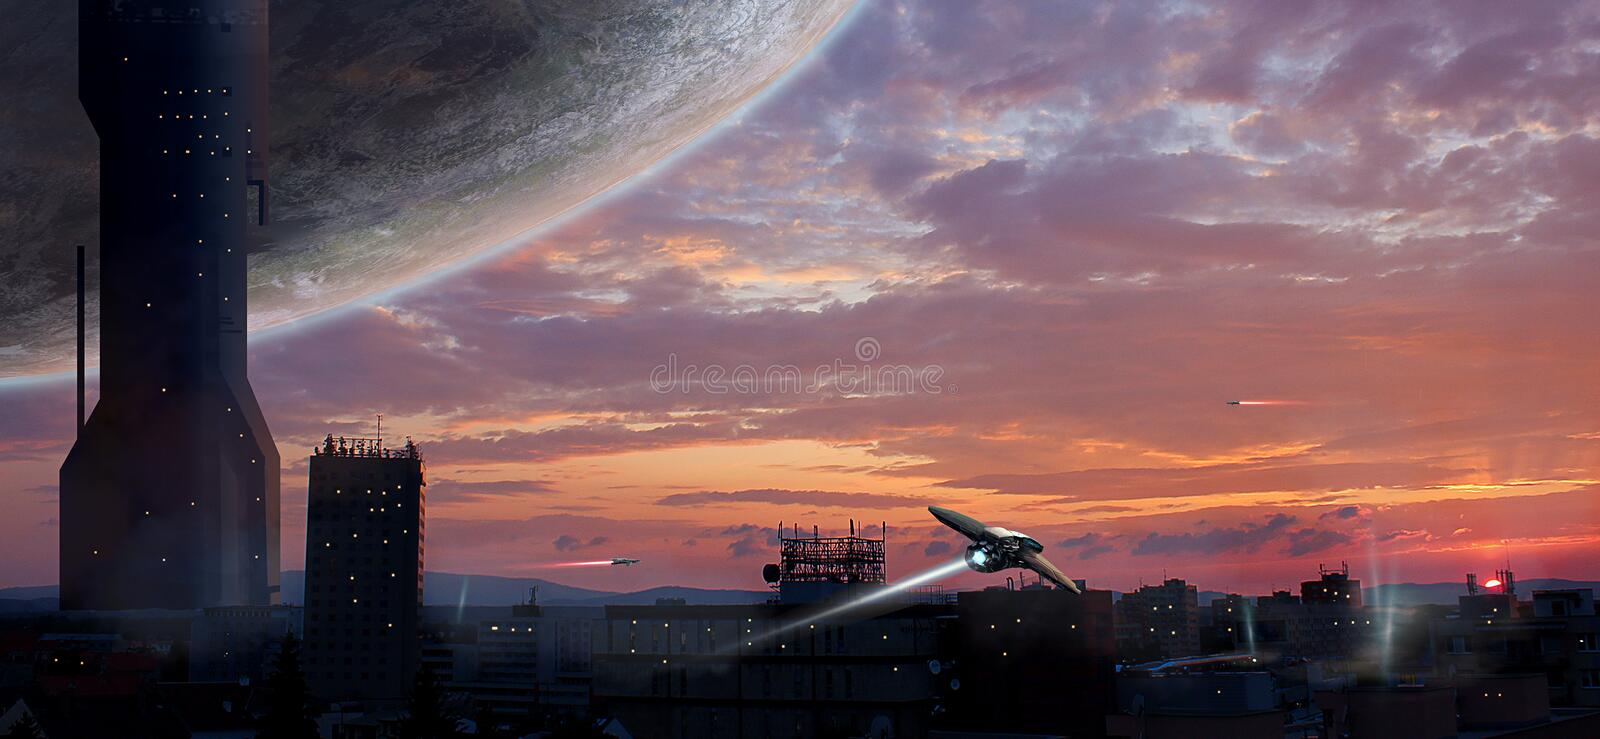 Sci-fi city with planet and spaceships, photo manipulation, Elem. Ents furnished by NASA. 3D rendering. Illustration royalty free illustration